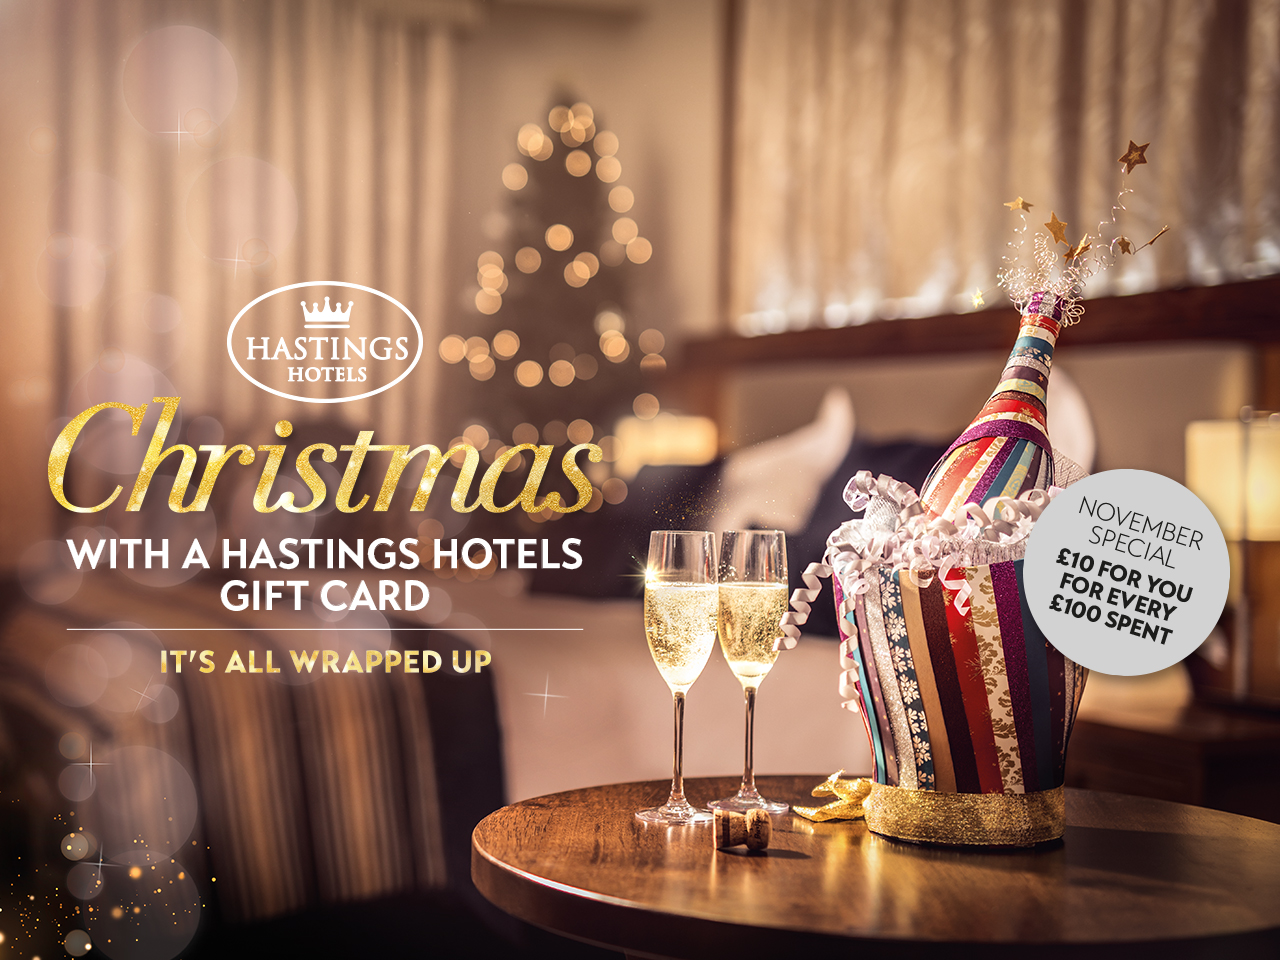 Belfast Hotel Vouchers | Gift Vouchers Northern Ireland | Hastings